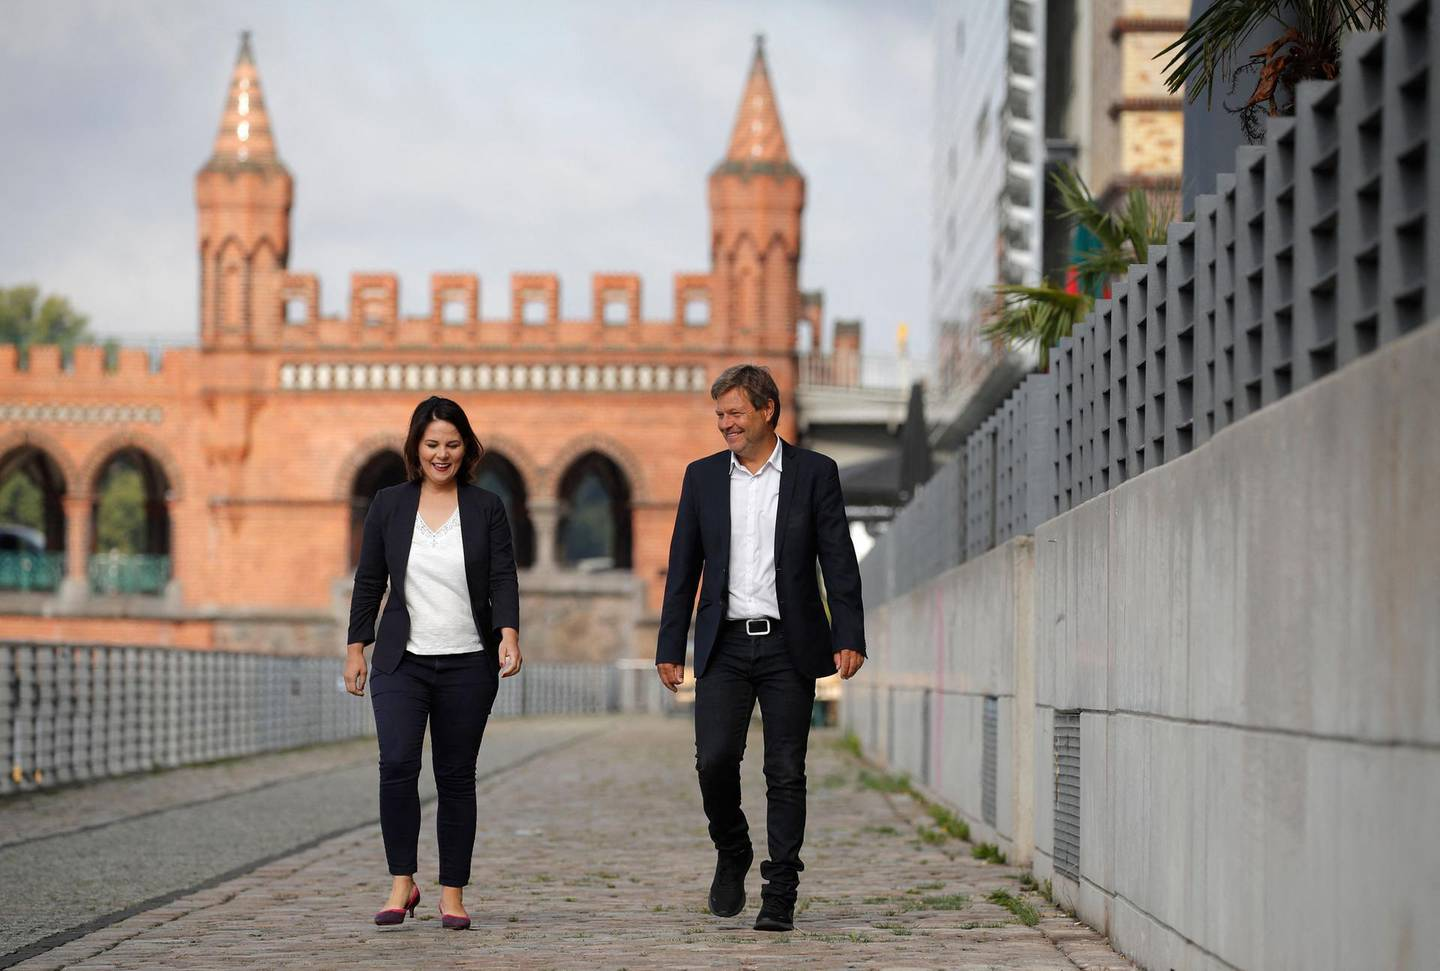 (FILES) This file photo taken on August 31, 2020 shows the co-leaders of Germany's Green party Annalena Baerbock (L) and Robert Habeck walking along the river Spree as they arrive for a closed meeting with the Greens' leadership in Berlin. Germany's Green party on Monday, April 19, 2021 named its co-chair Annalena Baerbock as their candidate to succeed Angela Merkel, throwing down the gauntlet to the chancellor's conservatives who were locked in increasingly vicious infighting for her crown. / AFP / Odd ANDERSEN